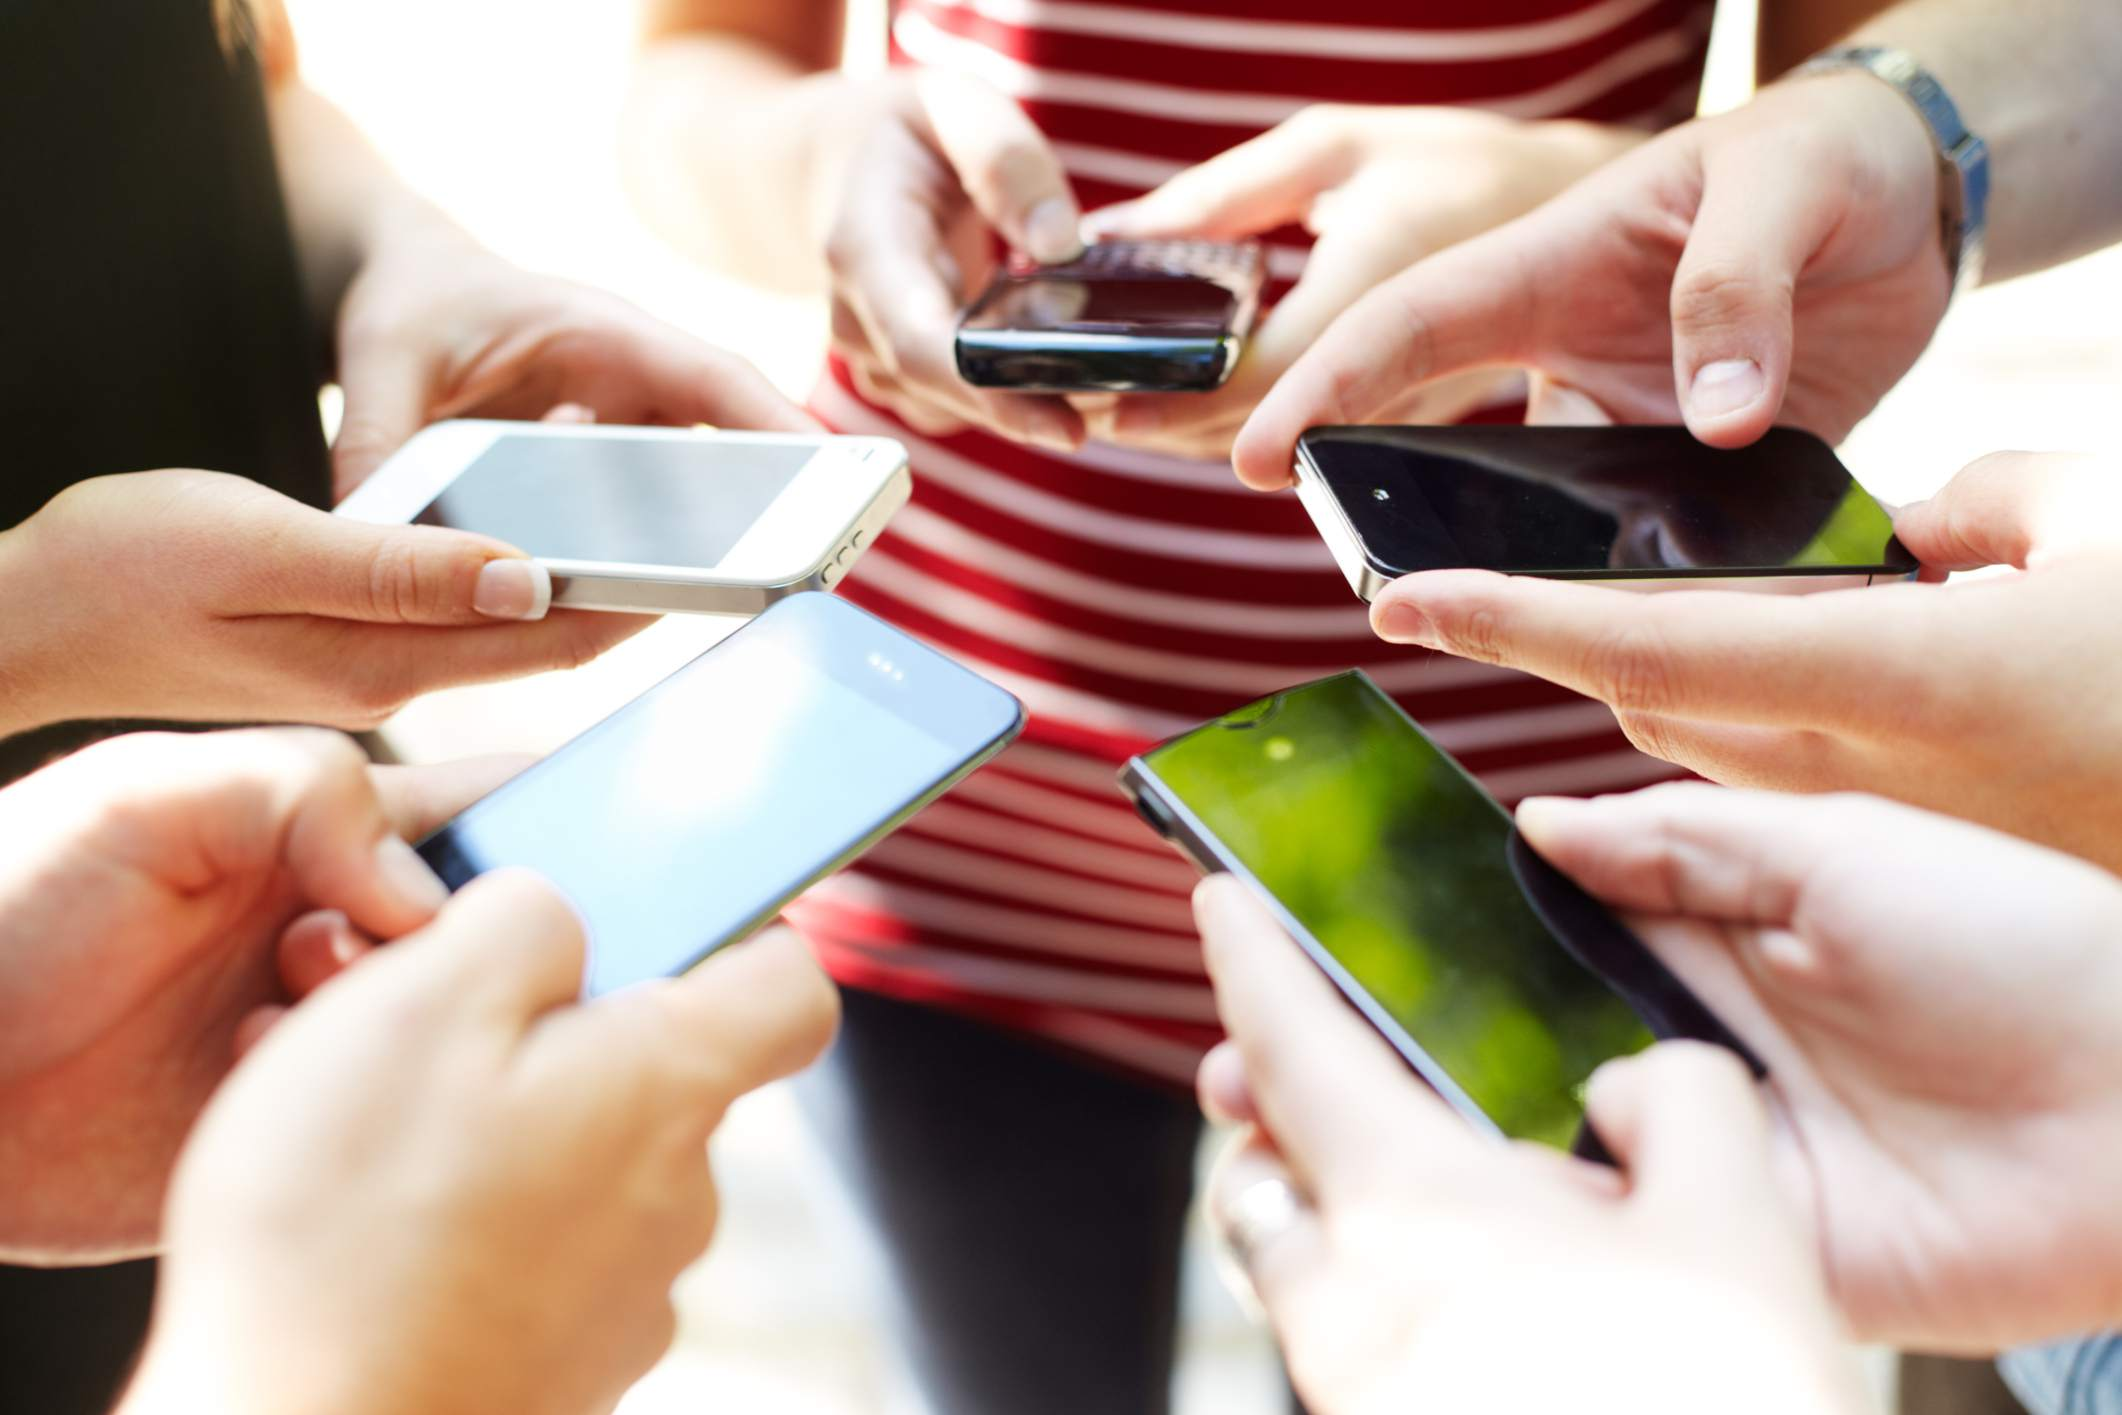 a circle of hands using smartphones